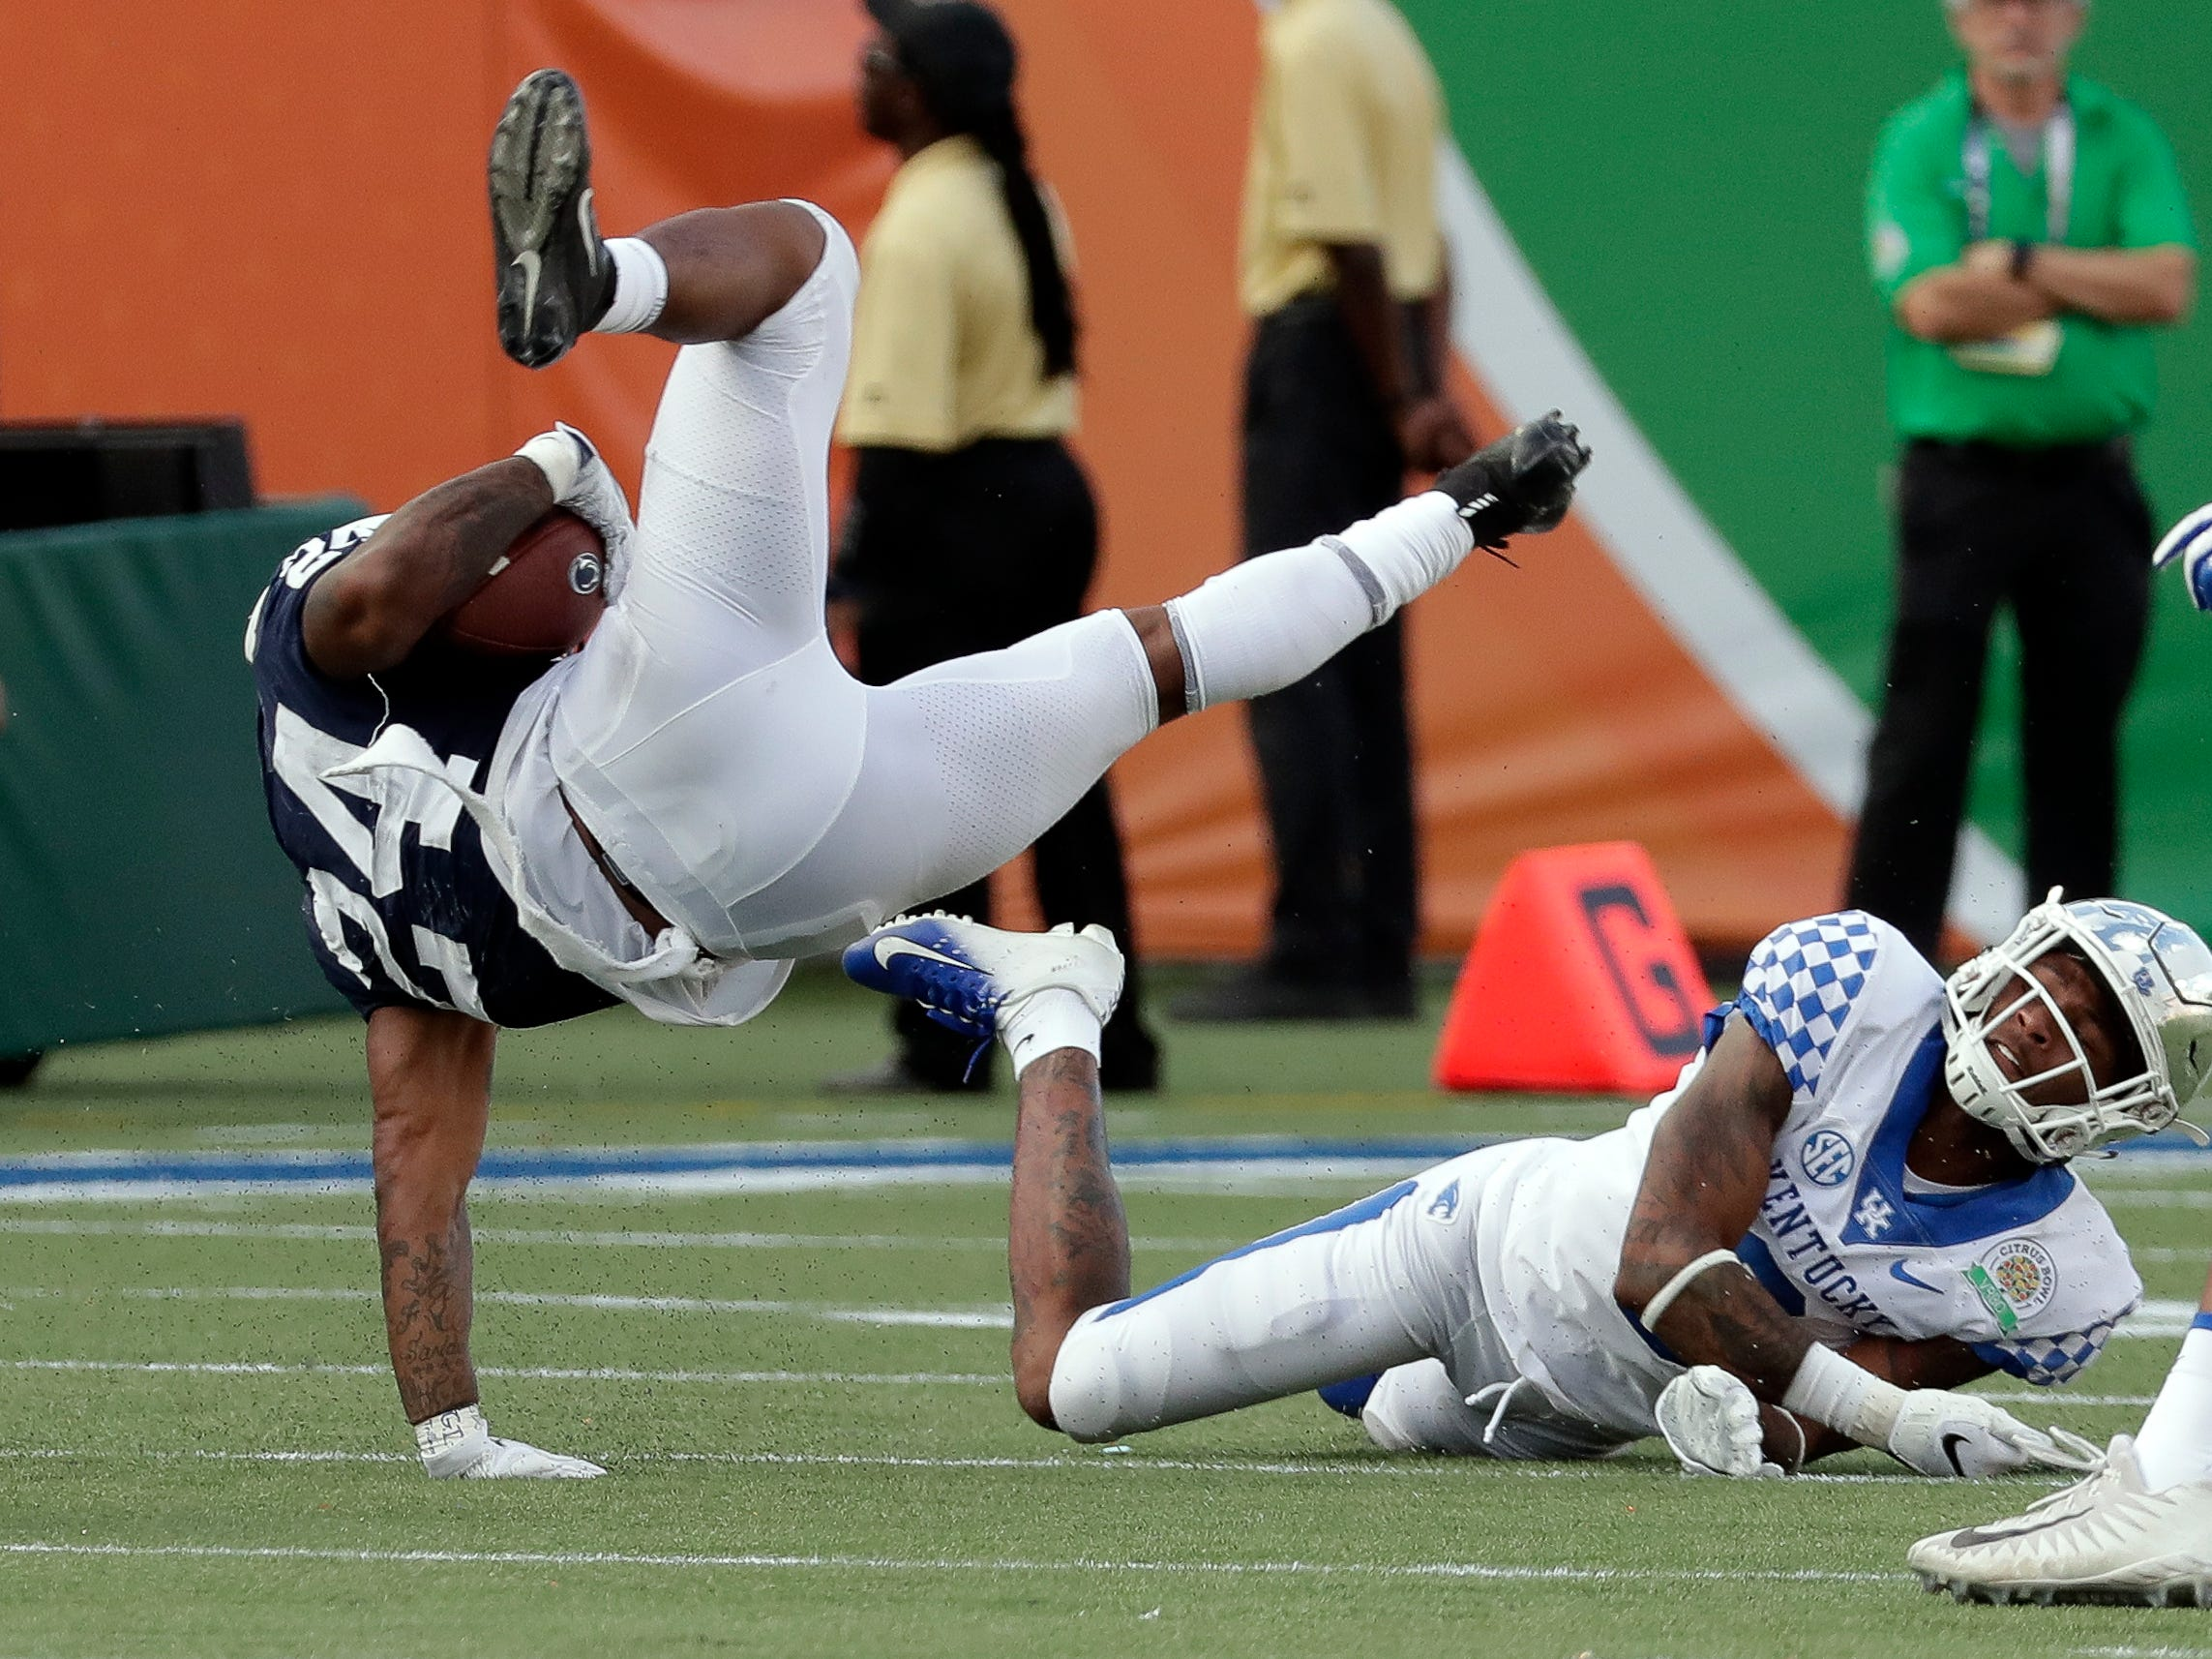 Penn State running back Miles Sanders (24) is upended by Kentucky cornerback Derrick Baity Jr., right, during the second half of the Citrus Bowl NCAA college football game, Tuesday, Jan. 1, 2019, in Orlando, Fla. (AP Photo/John Raoux)